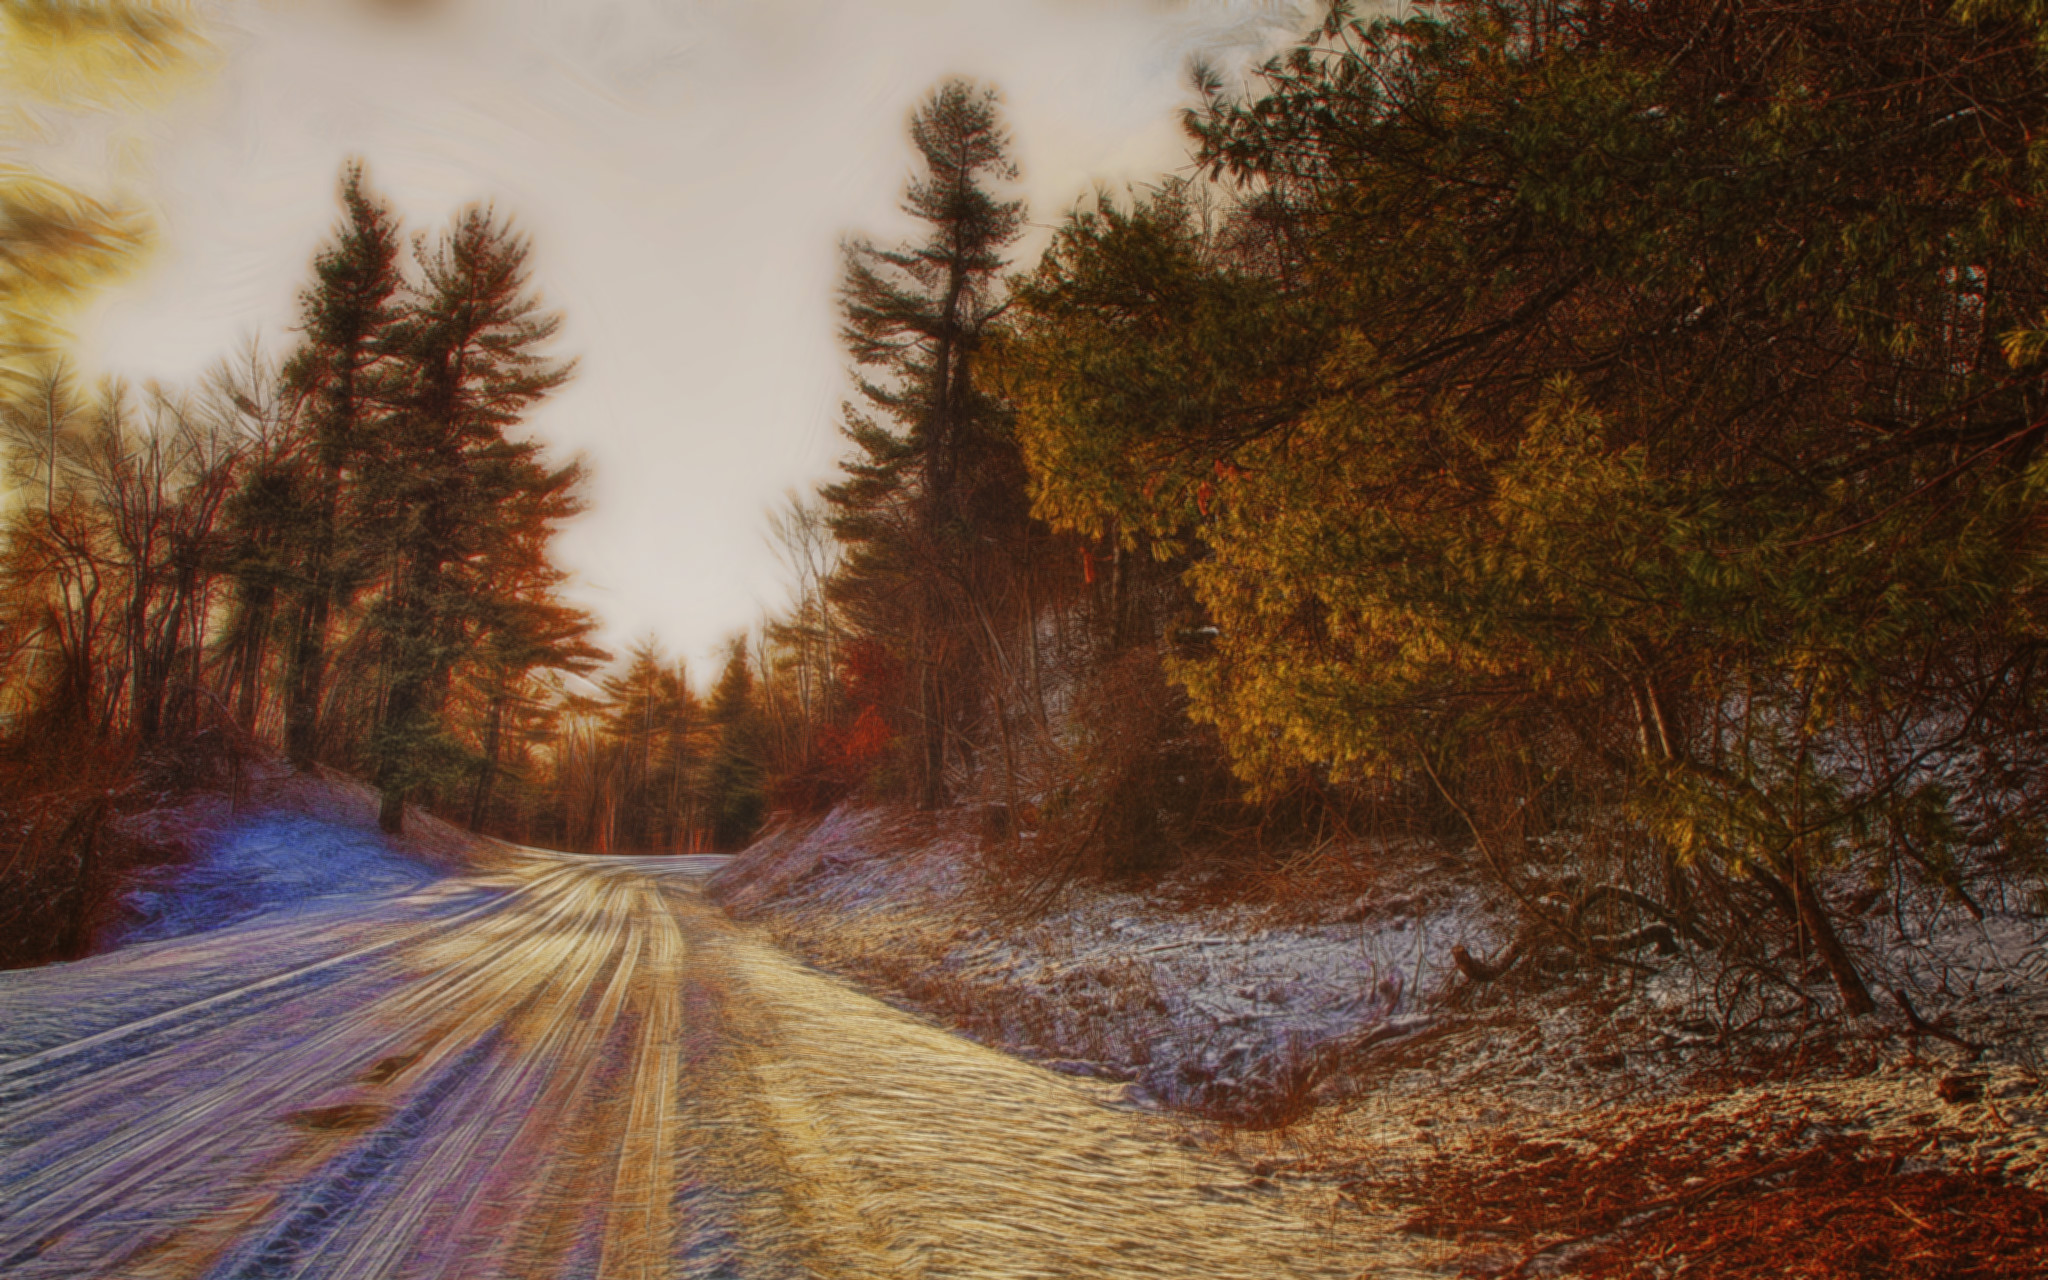 A highly saturated photo of a road bending through a pine forest in winter